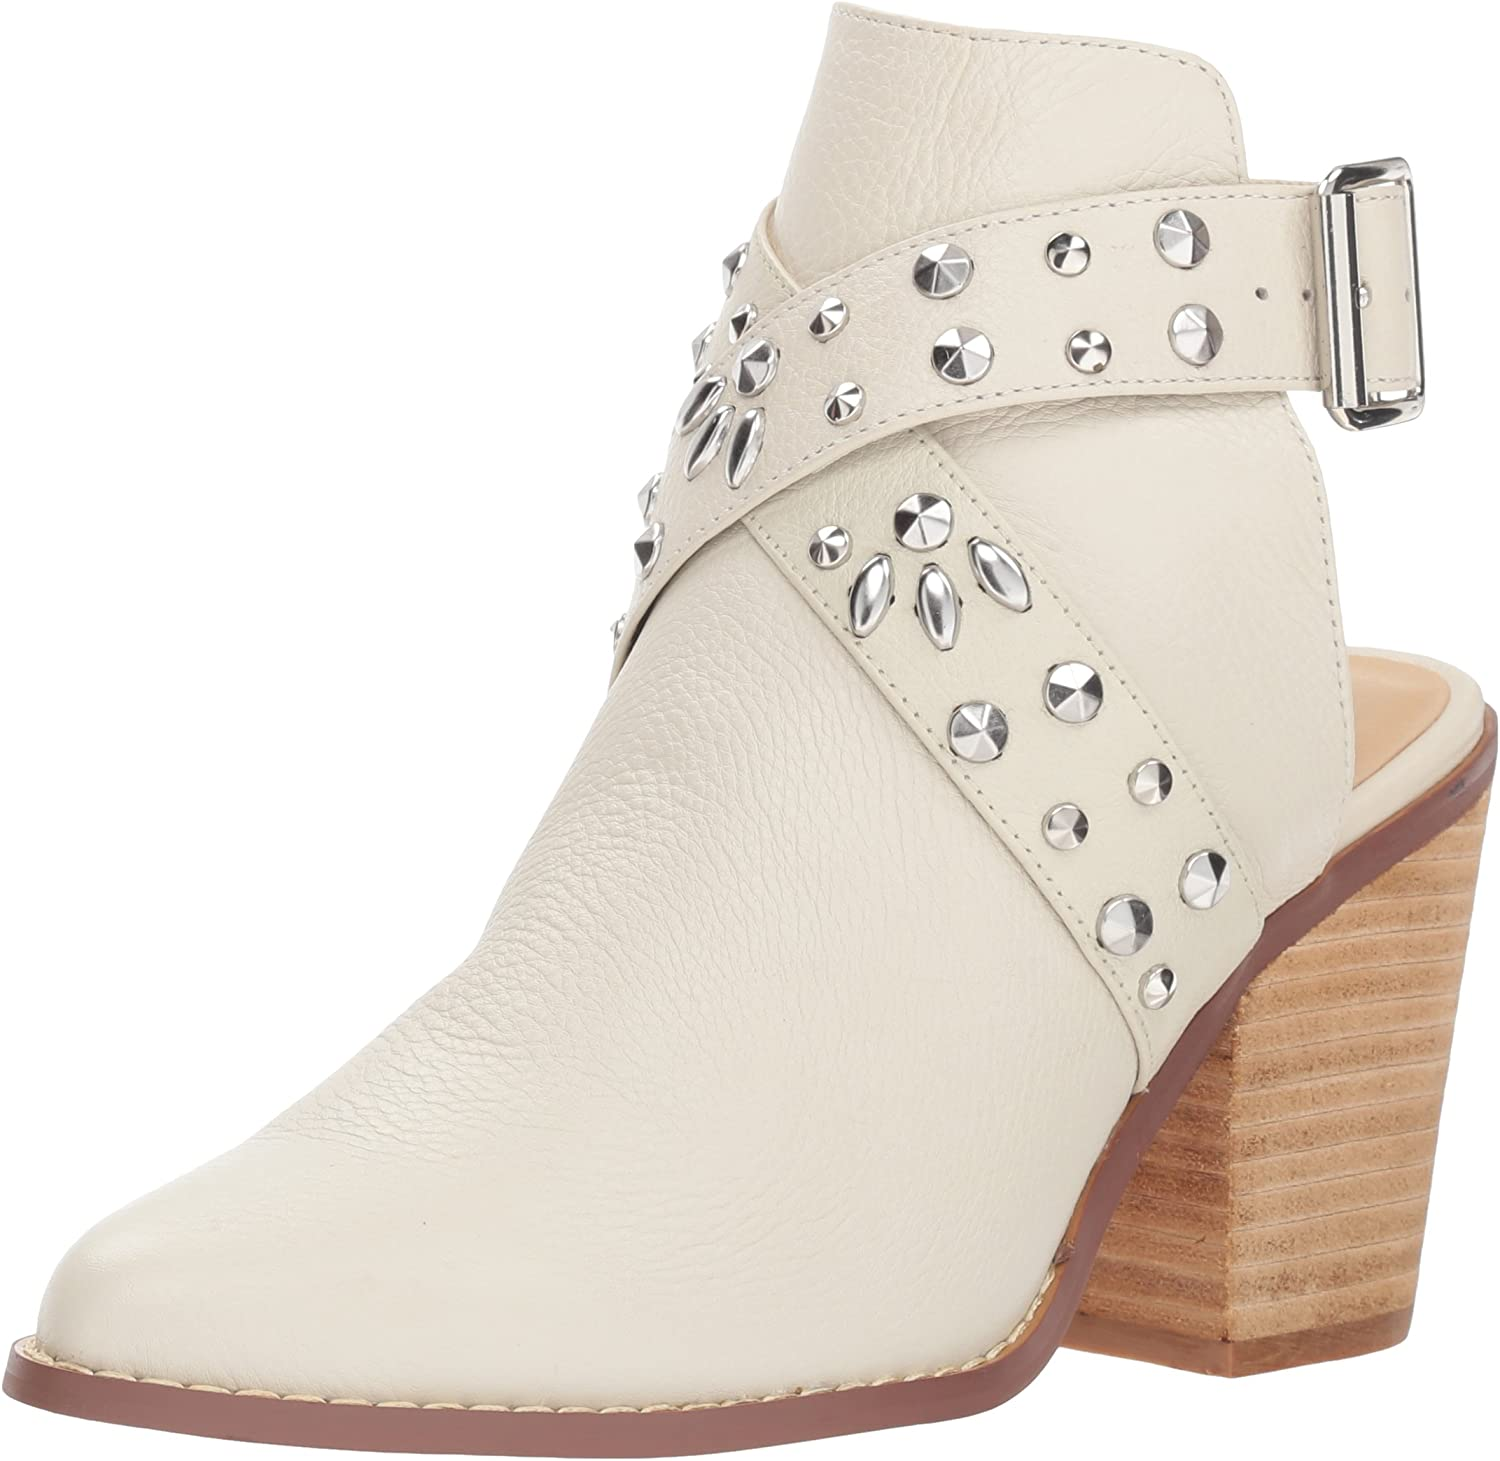 Chinese Laundry Women's Small Town Ankle Boot